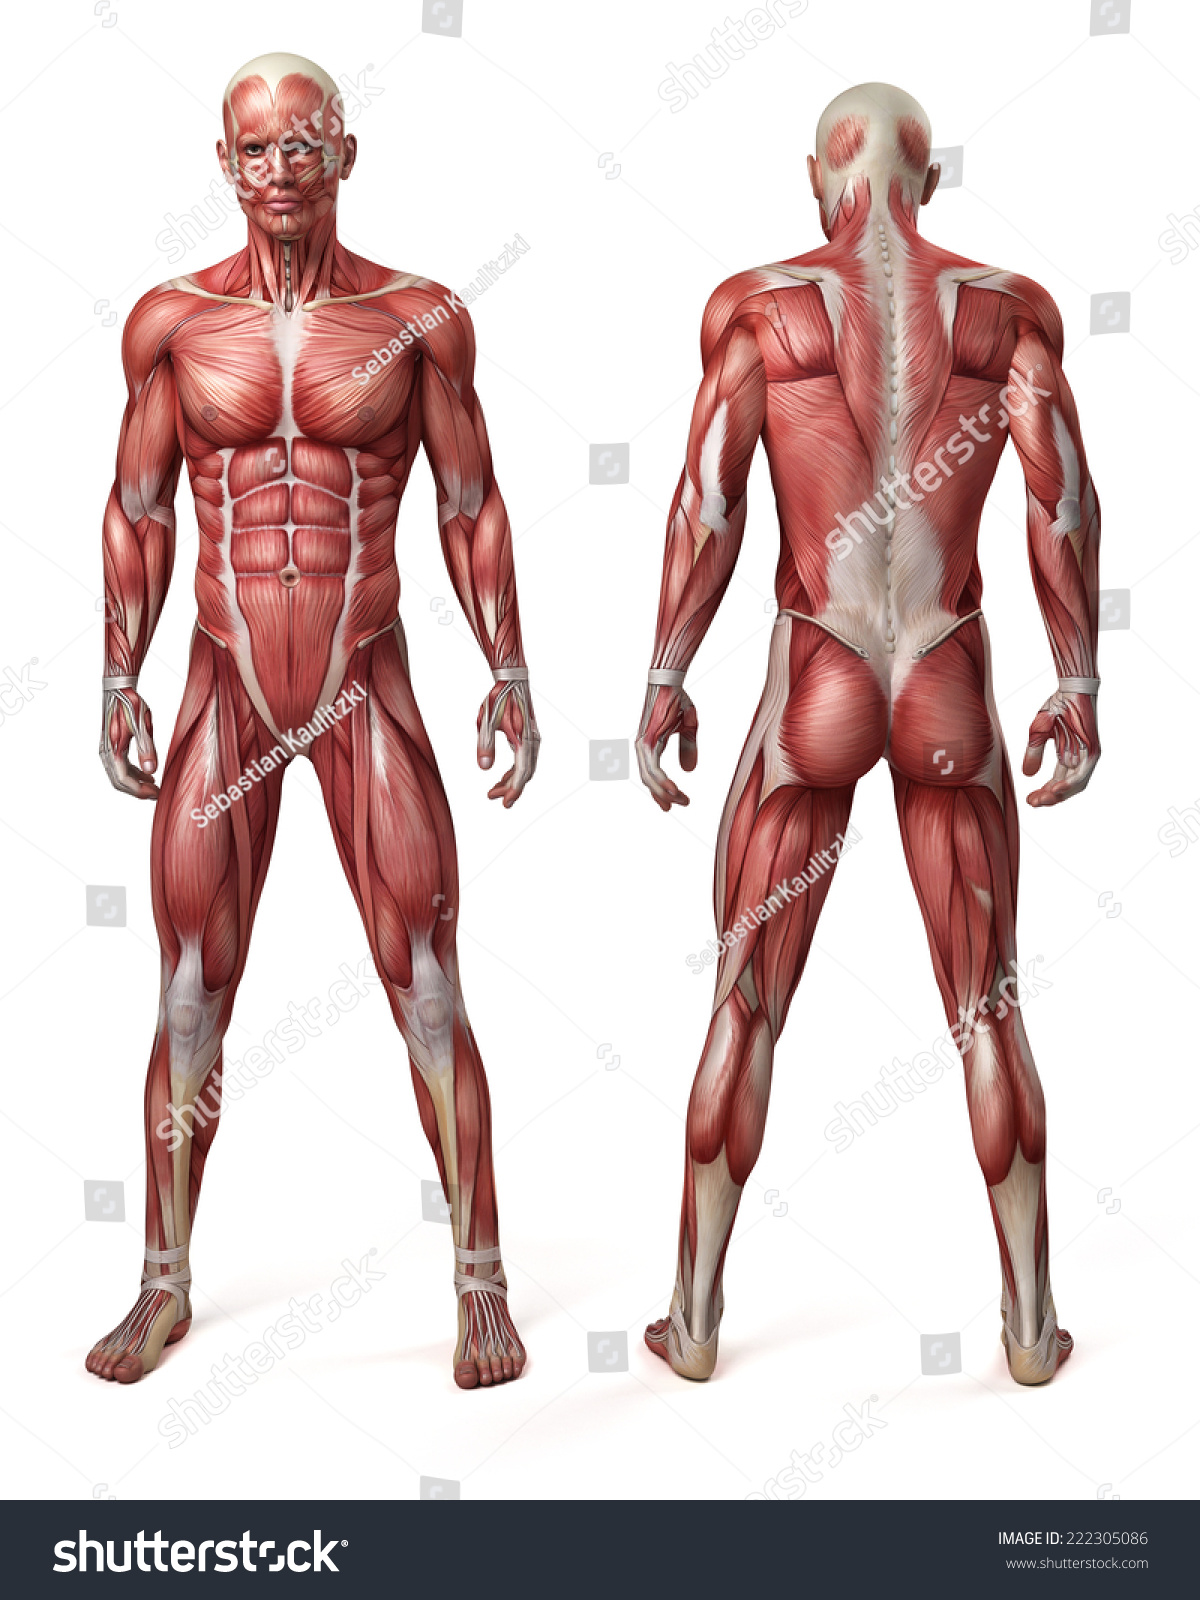 Medical 3d Illustration Of The Male Muscular System Ez Canvas